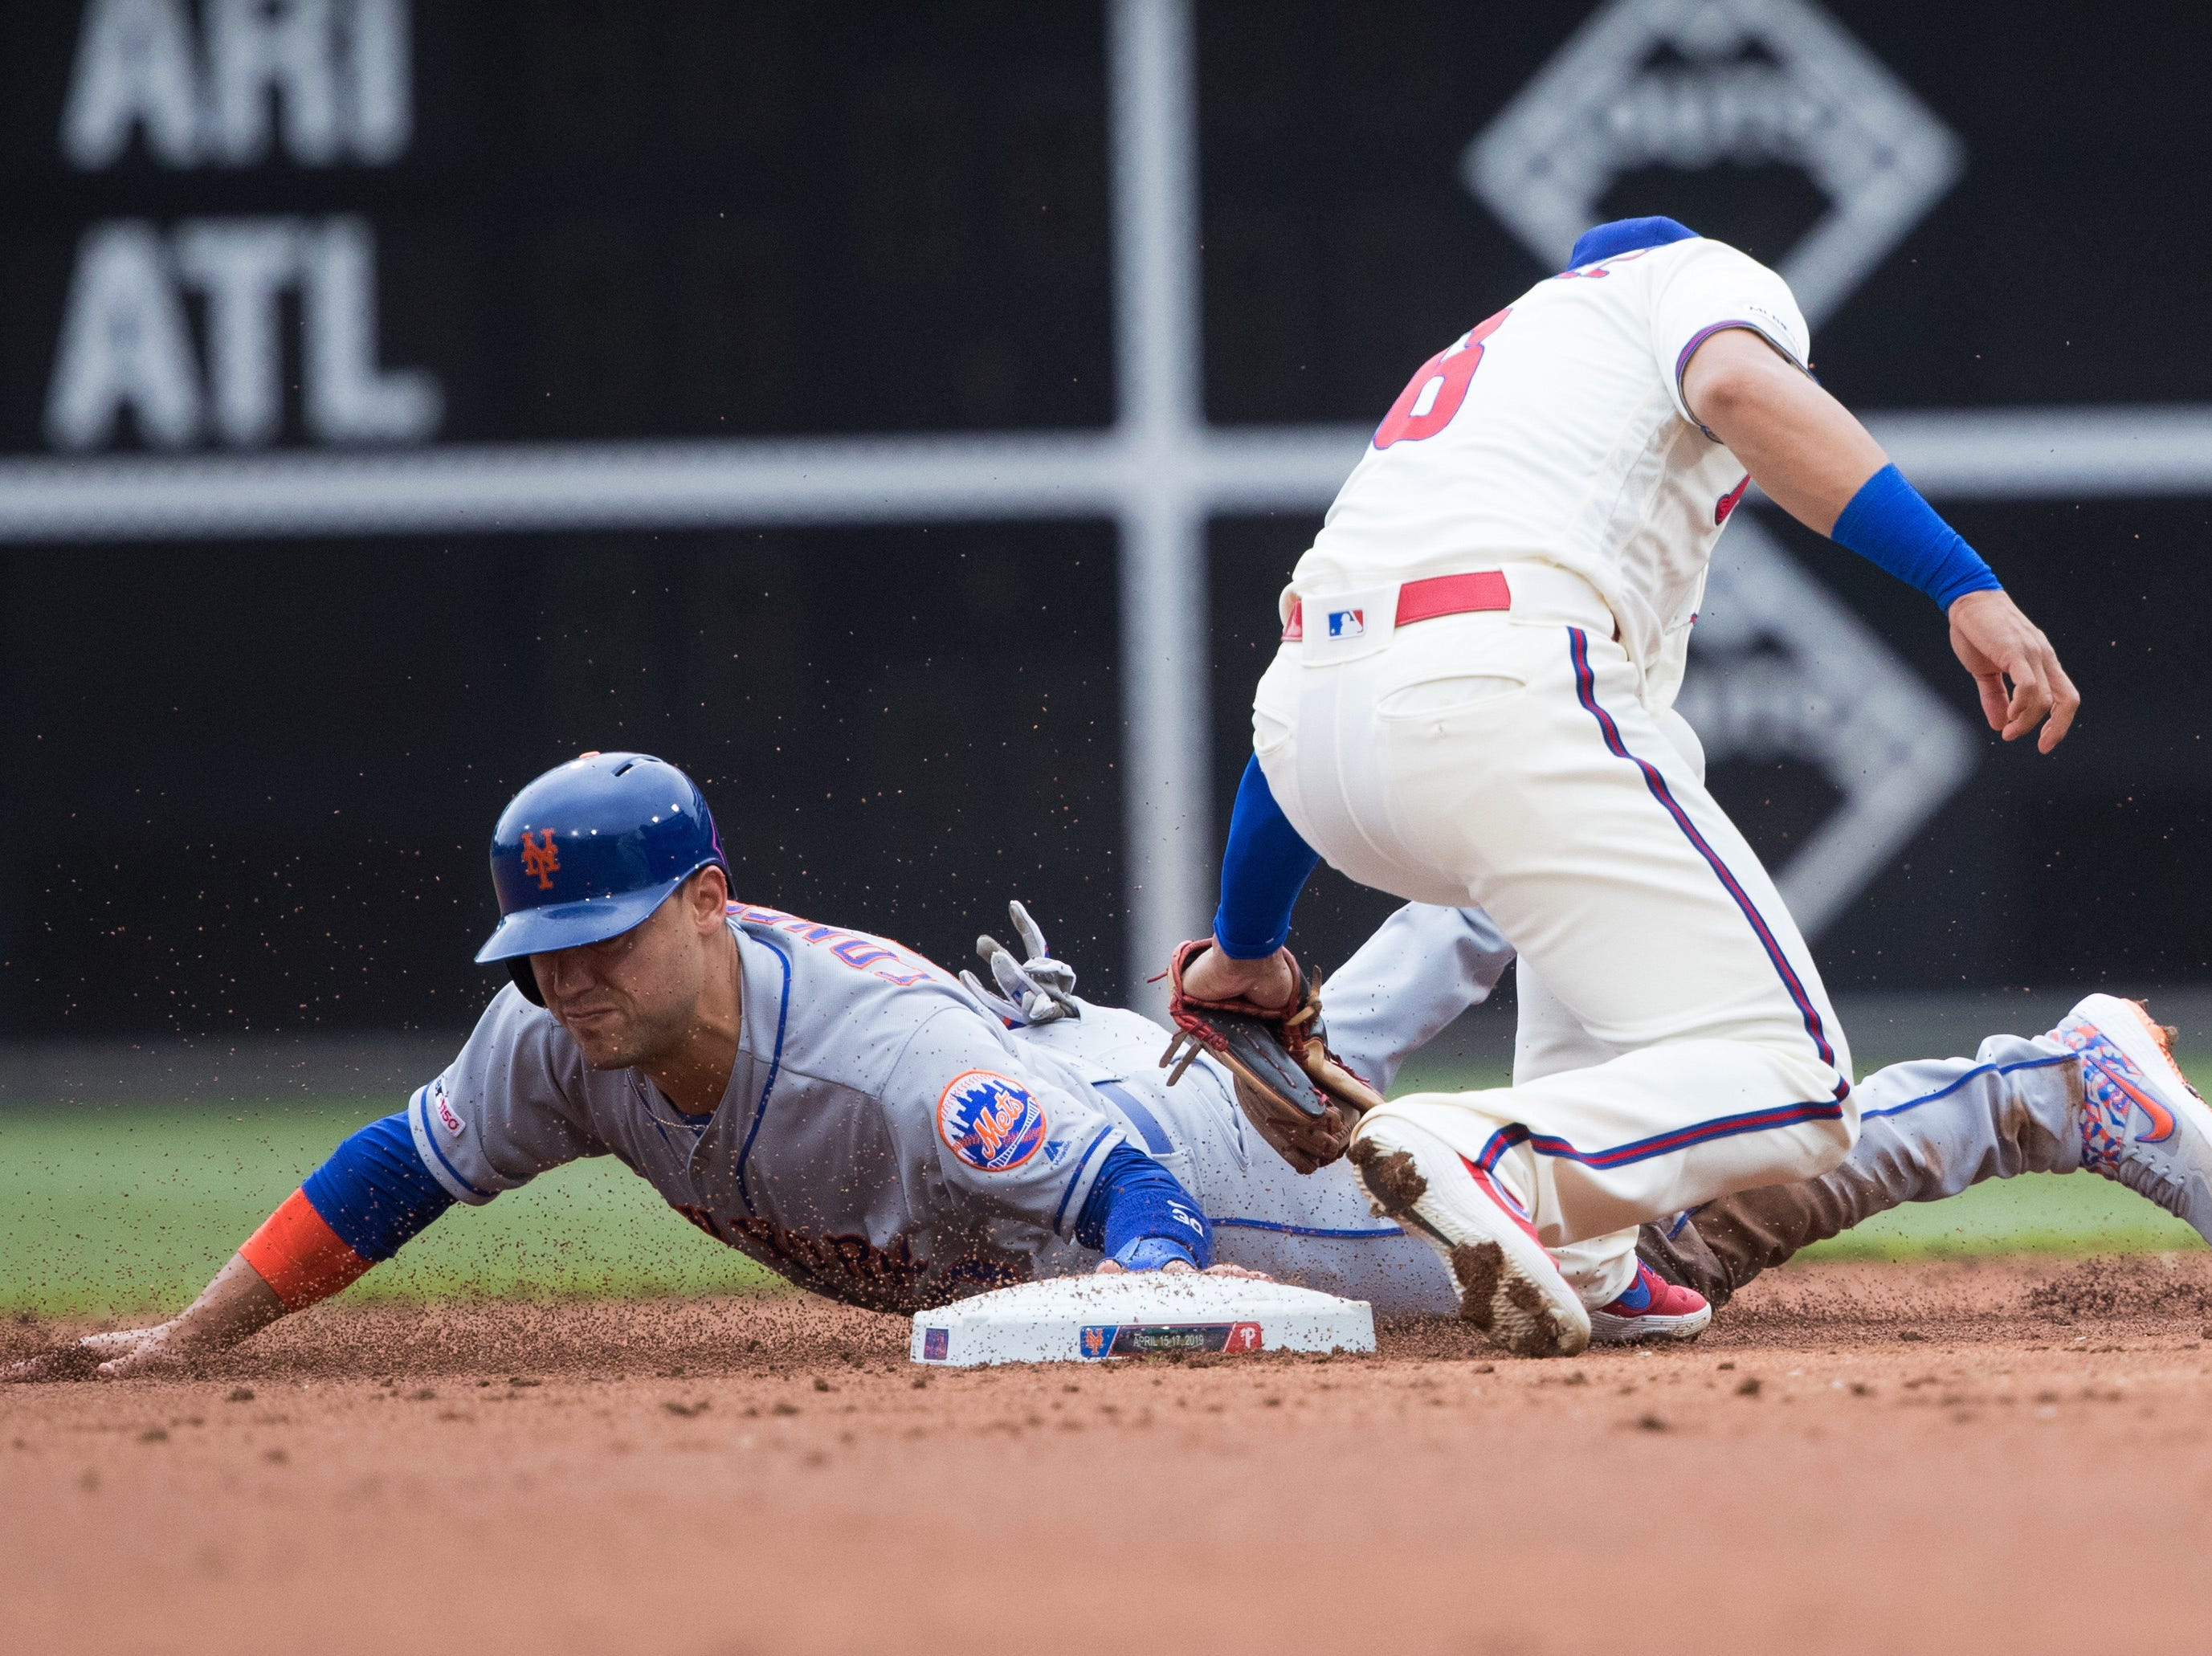 Mets can't complete comeback, fall to Phillies after loading the bases in ninth inning